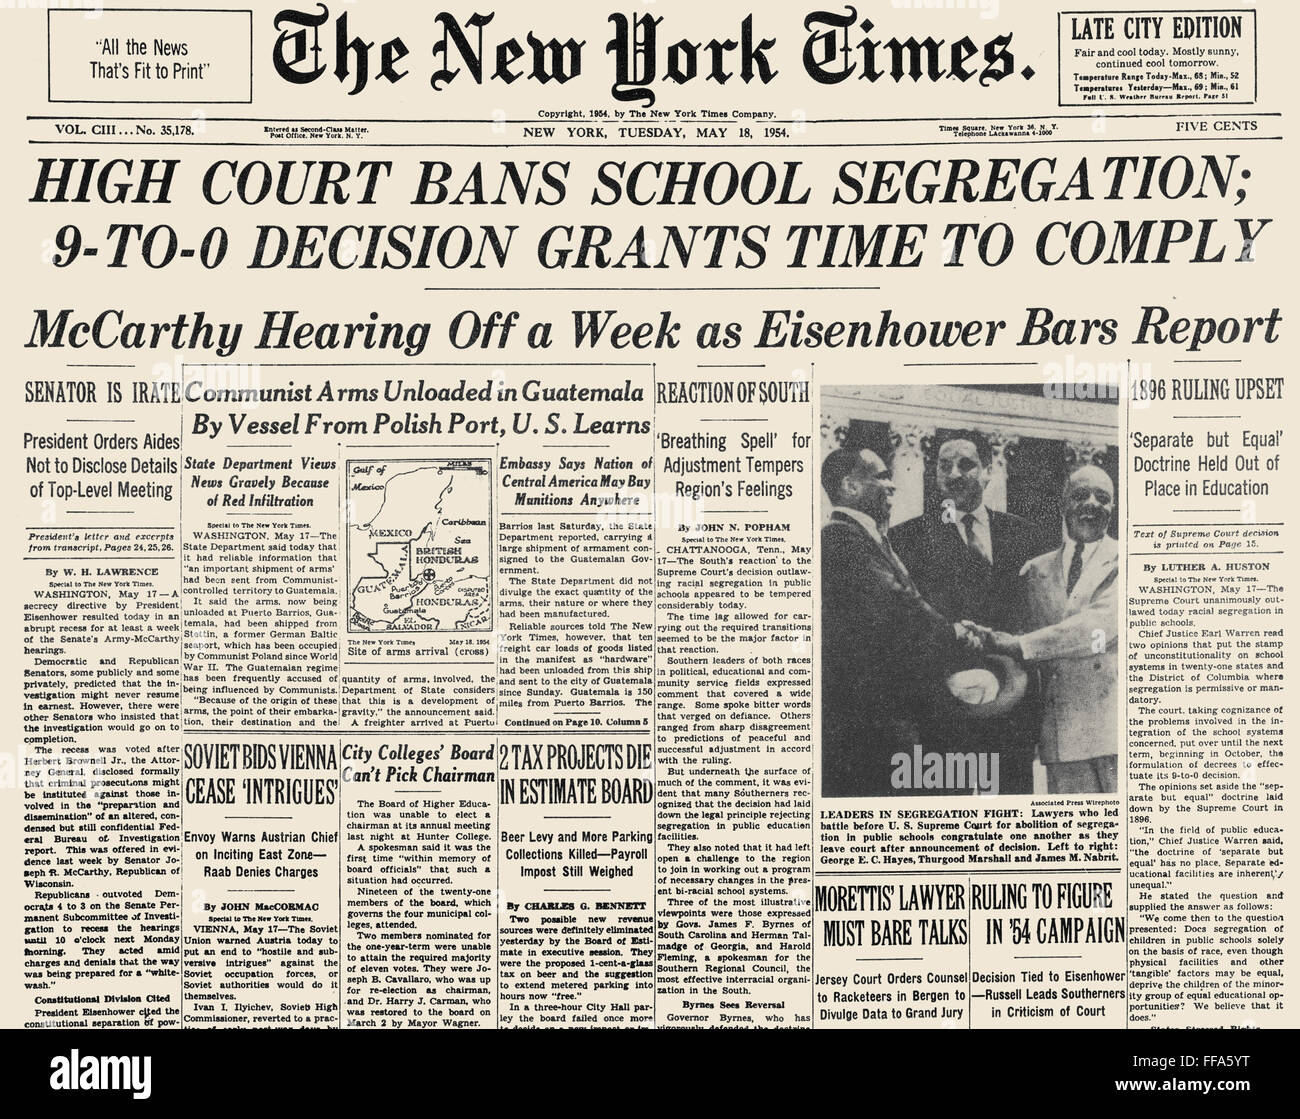 SEGREGATION HEADLINE, 1954. /nFront page of The New York Times, 18 May 1954, announcing the Supreme Court decision Stock Photo